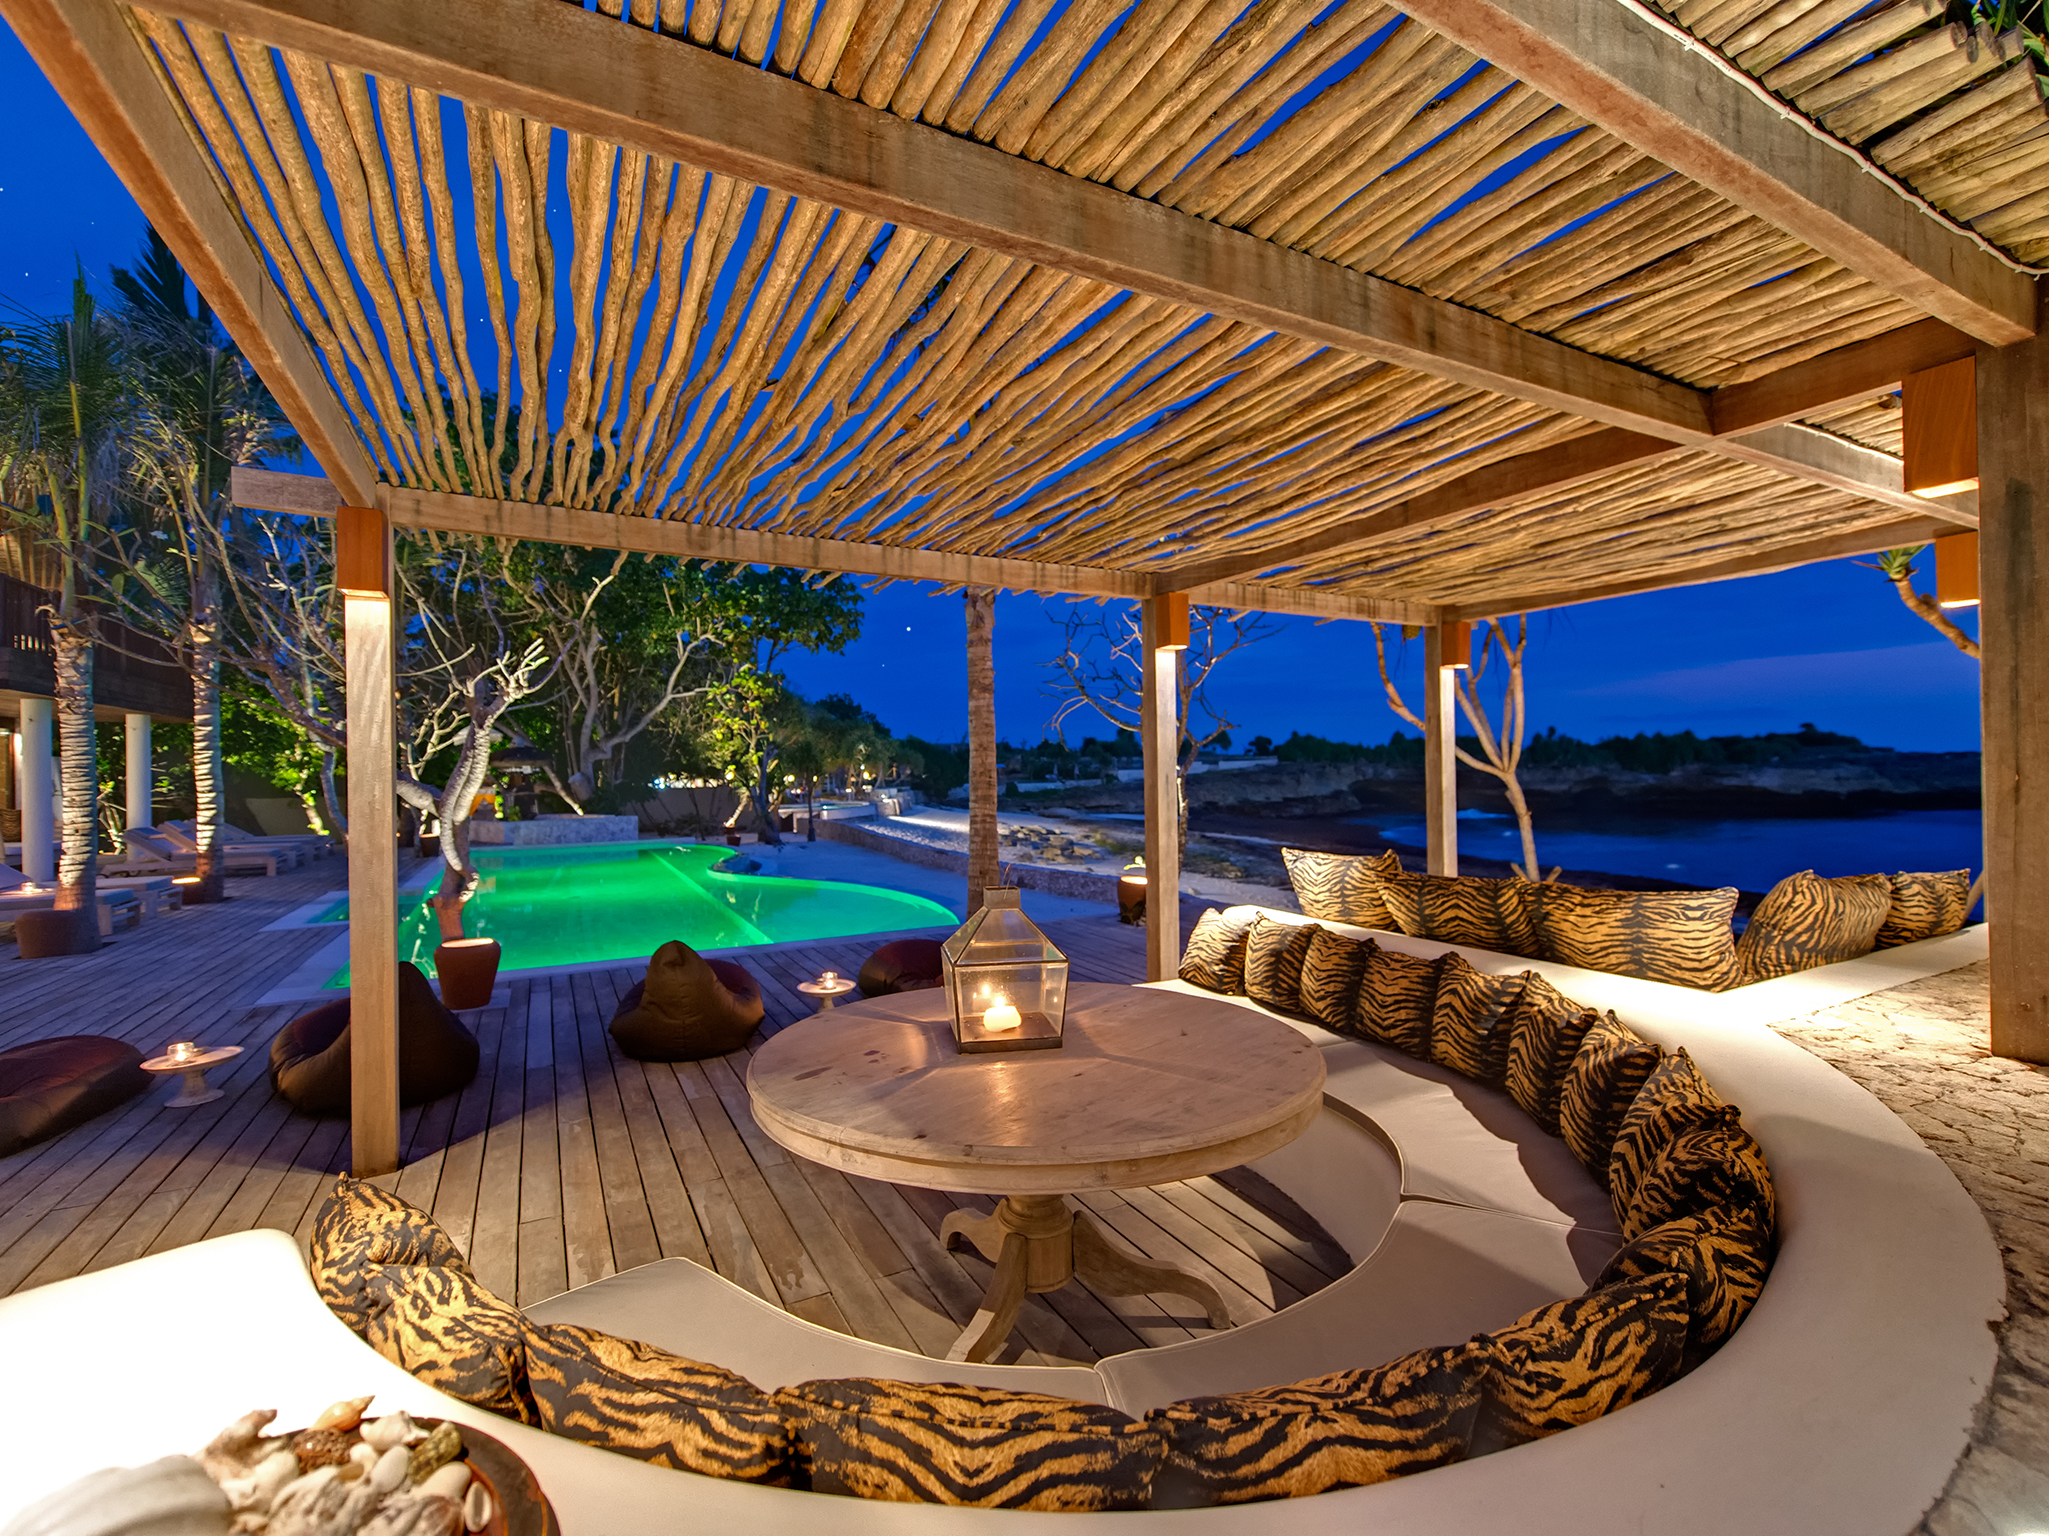 Villa Voyage - Alfresco dining at night - Villa Voyage, Nusa Lembongan, Bali